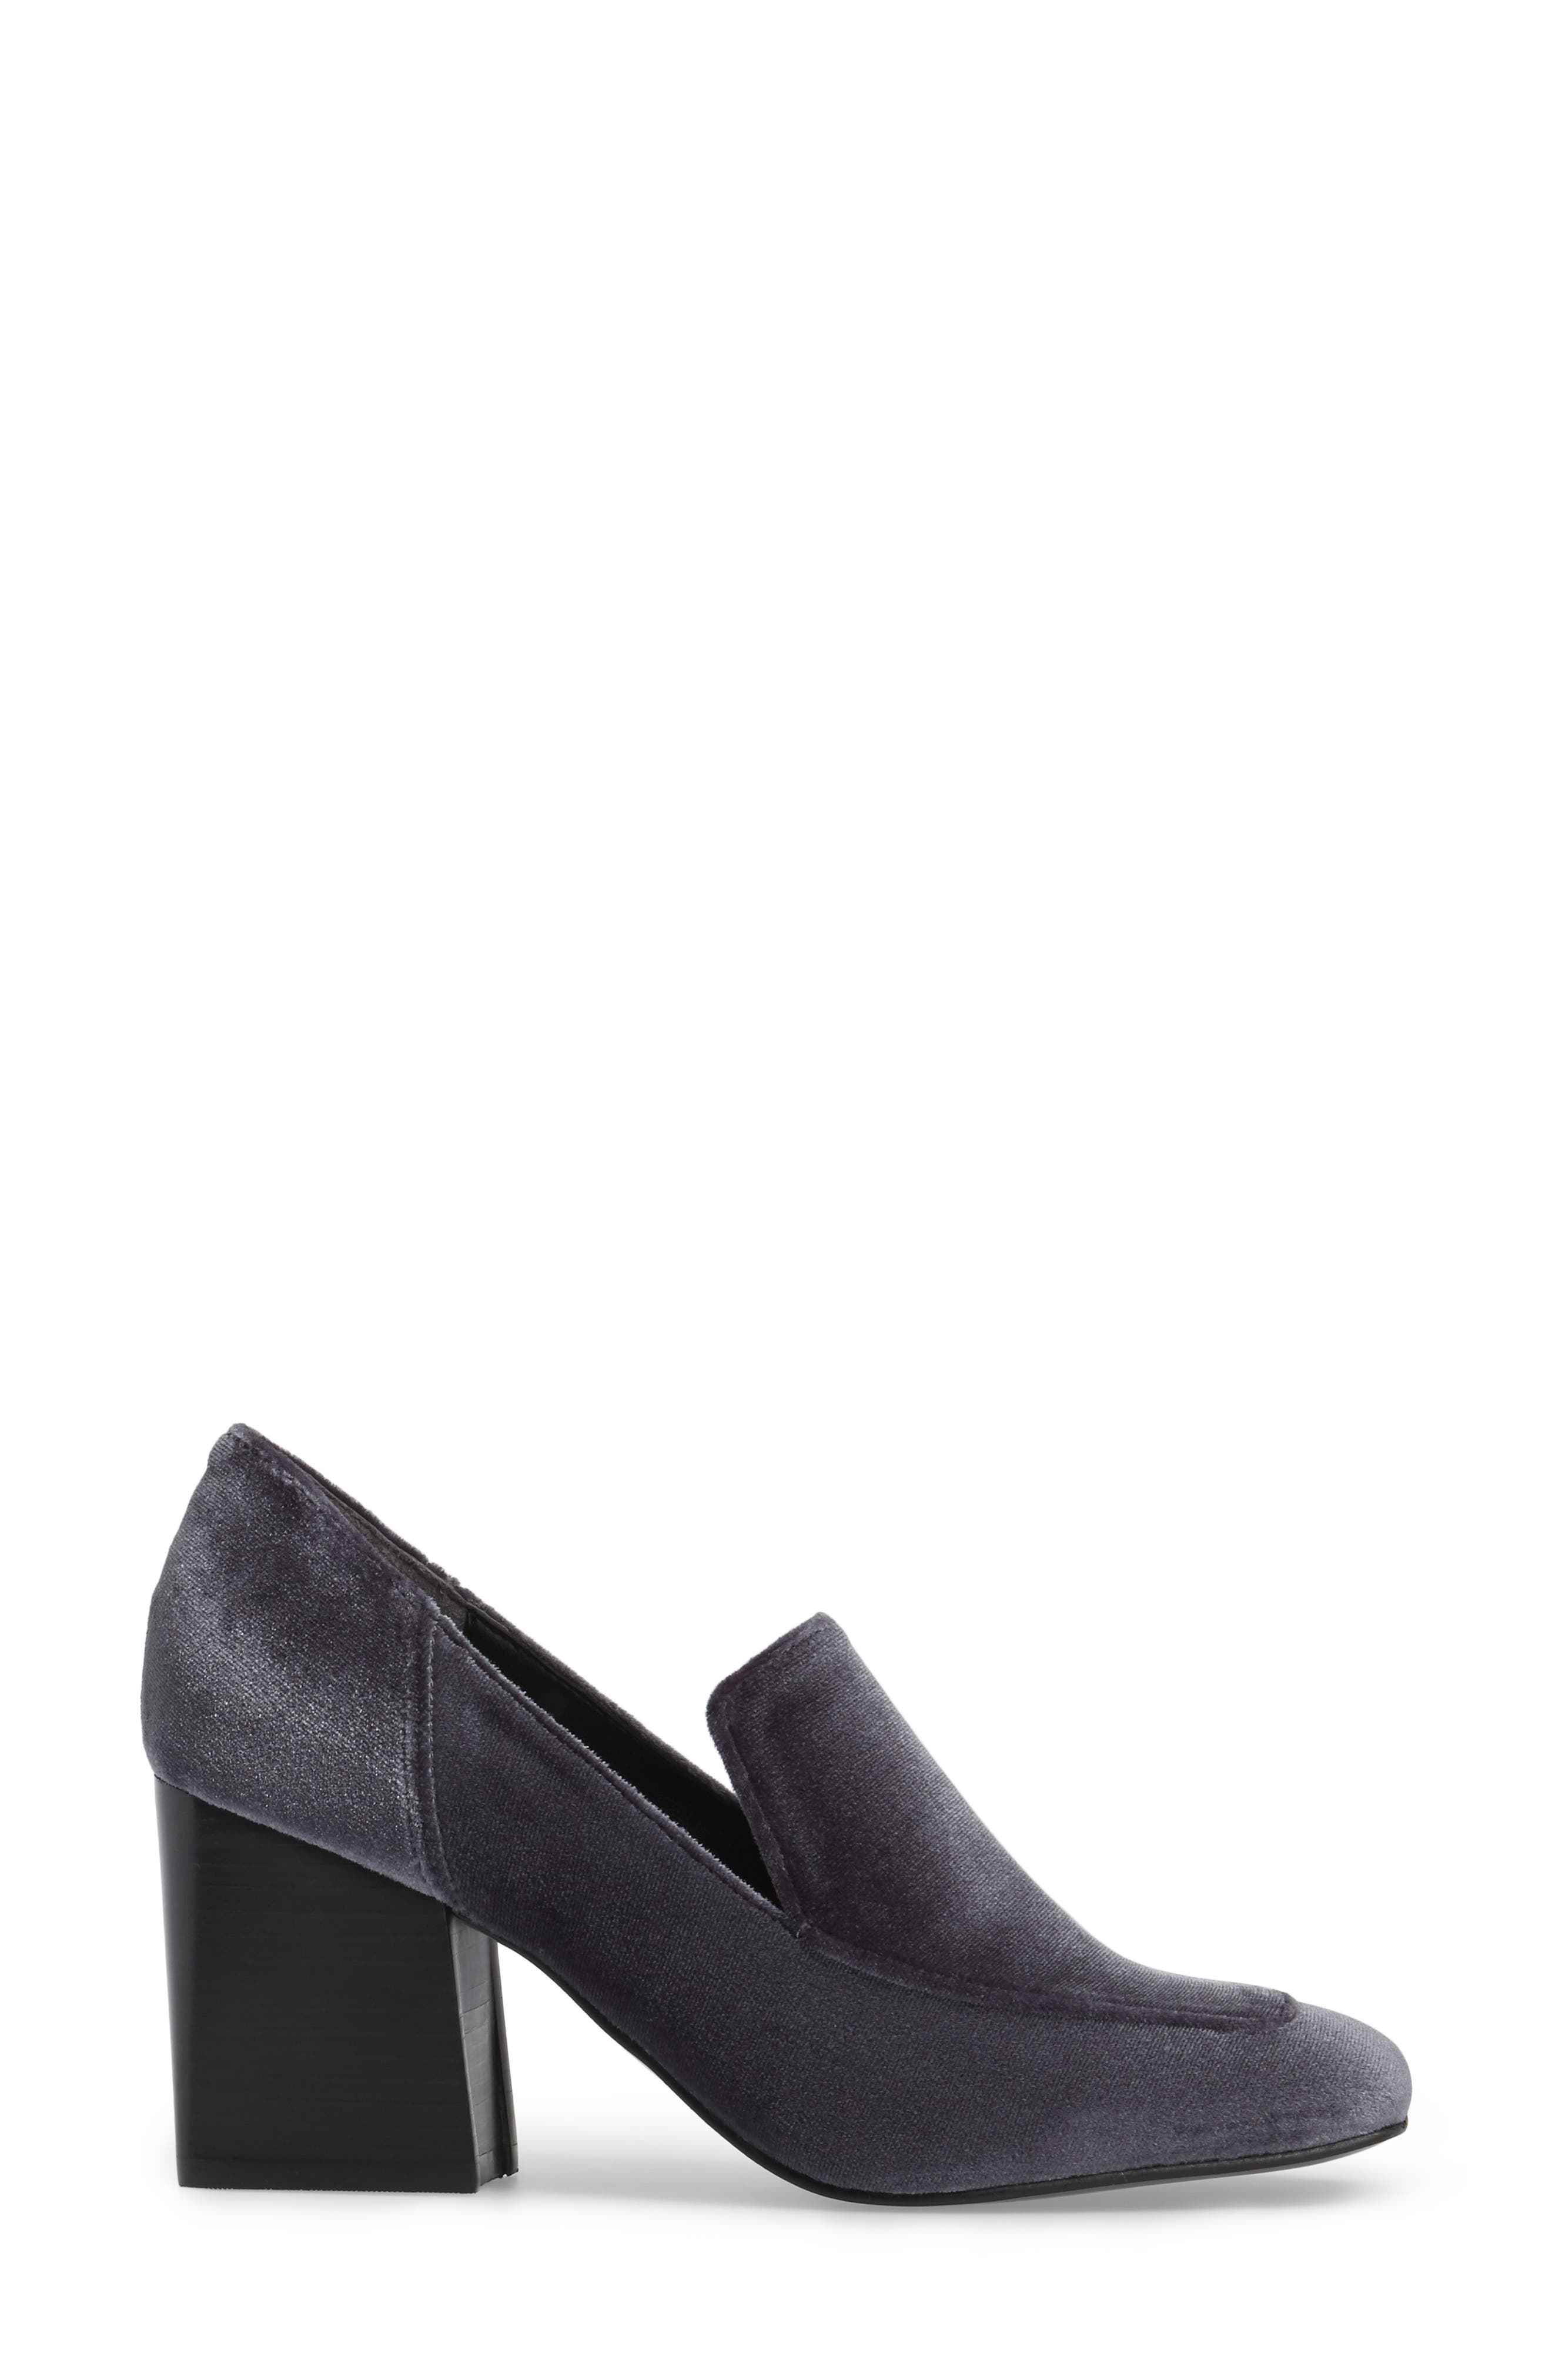 Marlo Loafer Pump,                             Alternate thumbnail 13, color,